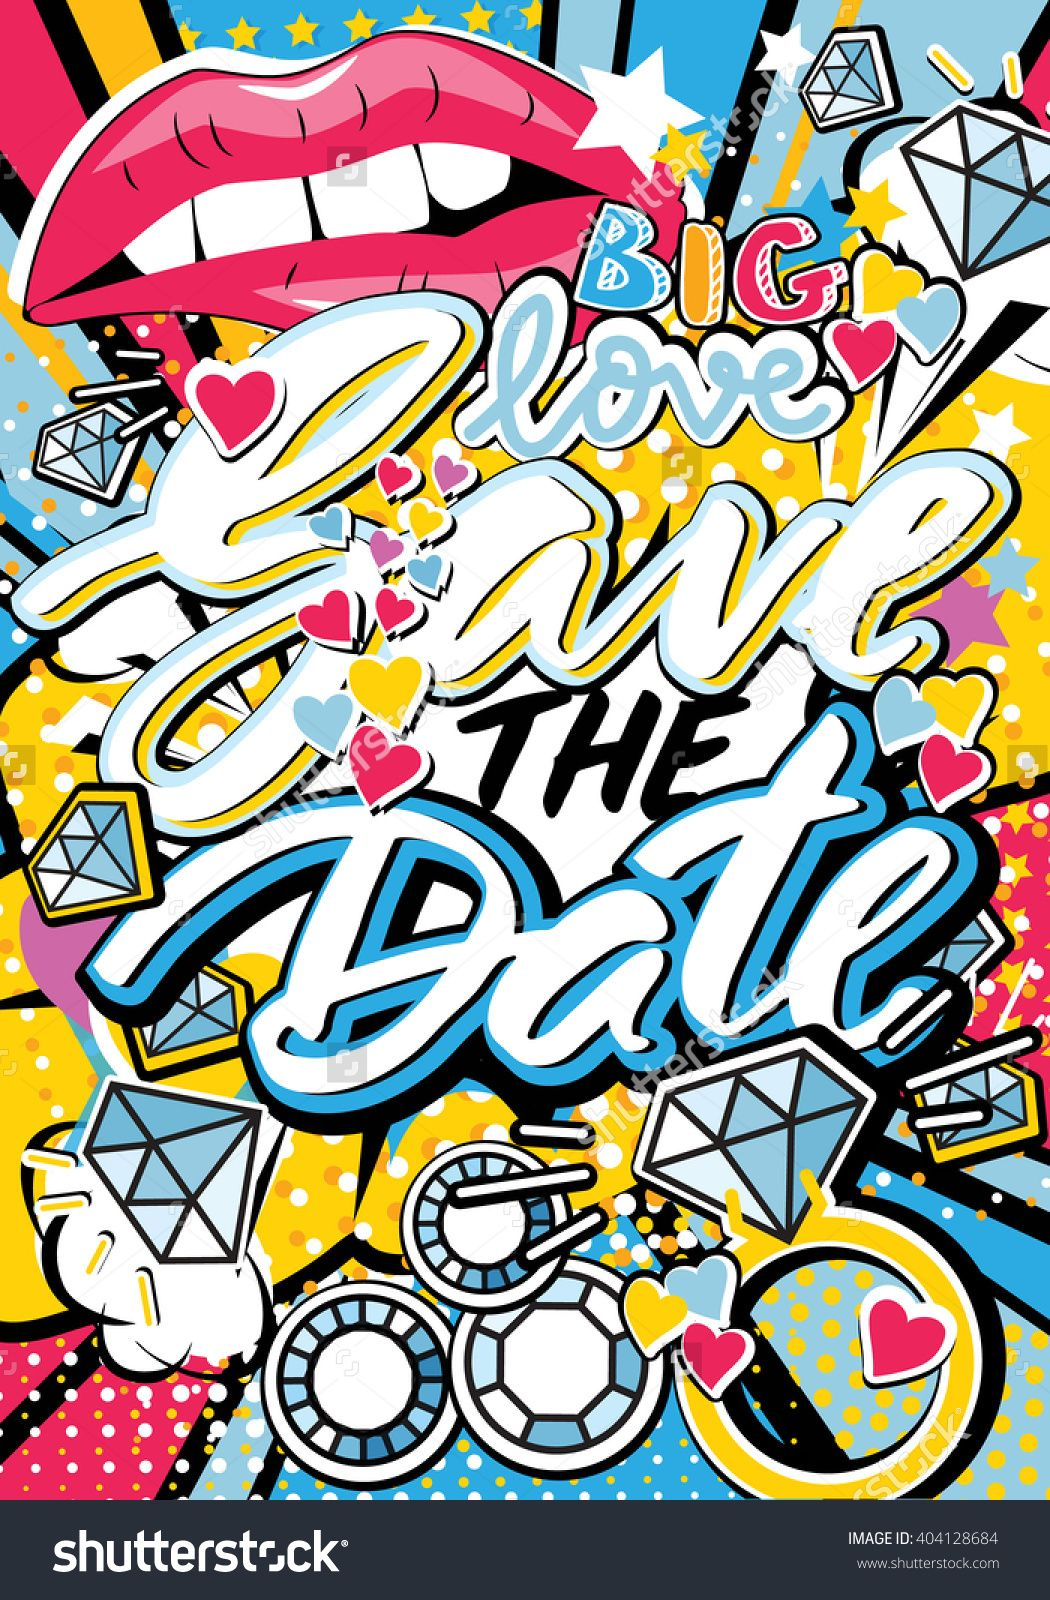 Save The Date Wedding Invitation Card In Pop Art Style With Hand ...